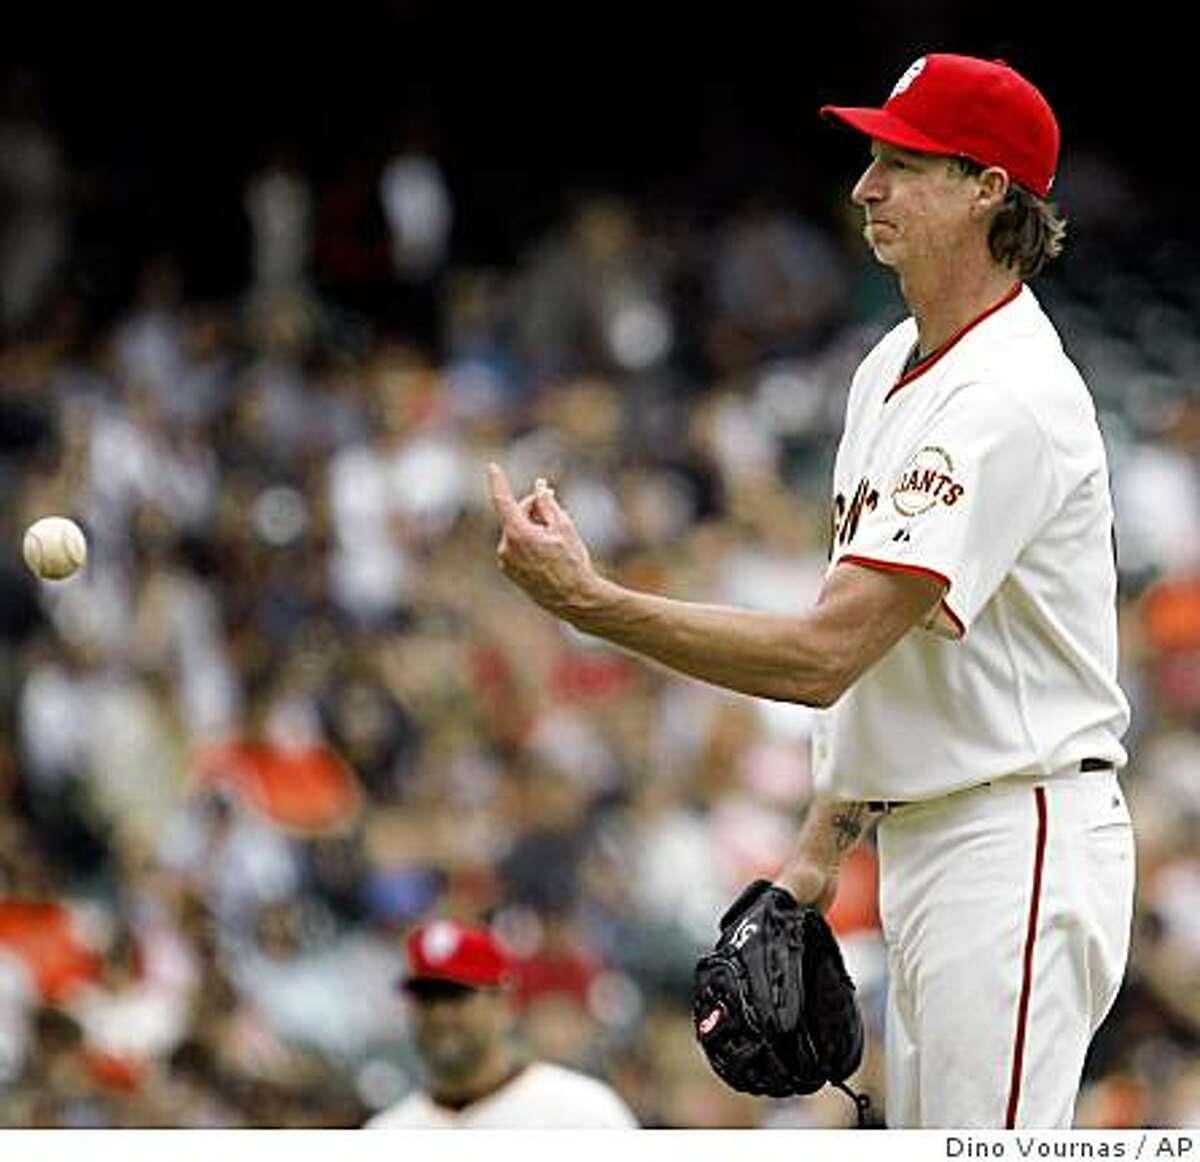 San Francisco Giants pitcher Randy Johnson tosses the ball back to the catcher after a run scored because of his throwing error against the Houston Astros in the fourth inning of a baseball game, Sunday, July 5, 2009 in San Francisco. (AP Photo/Dino Vournas)